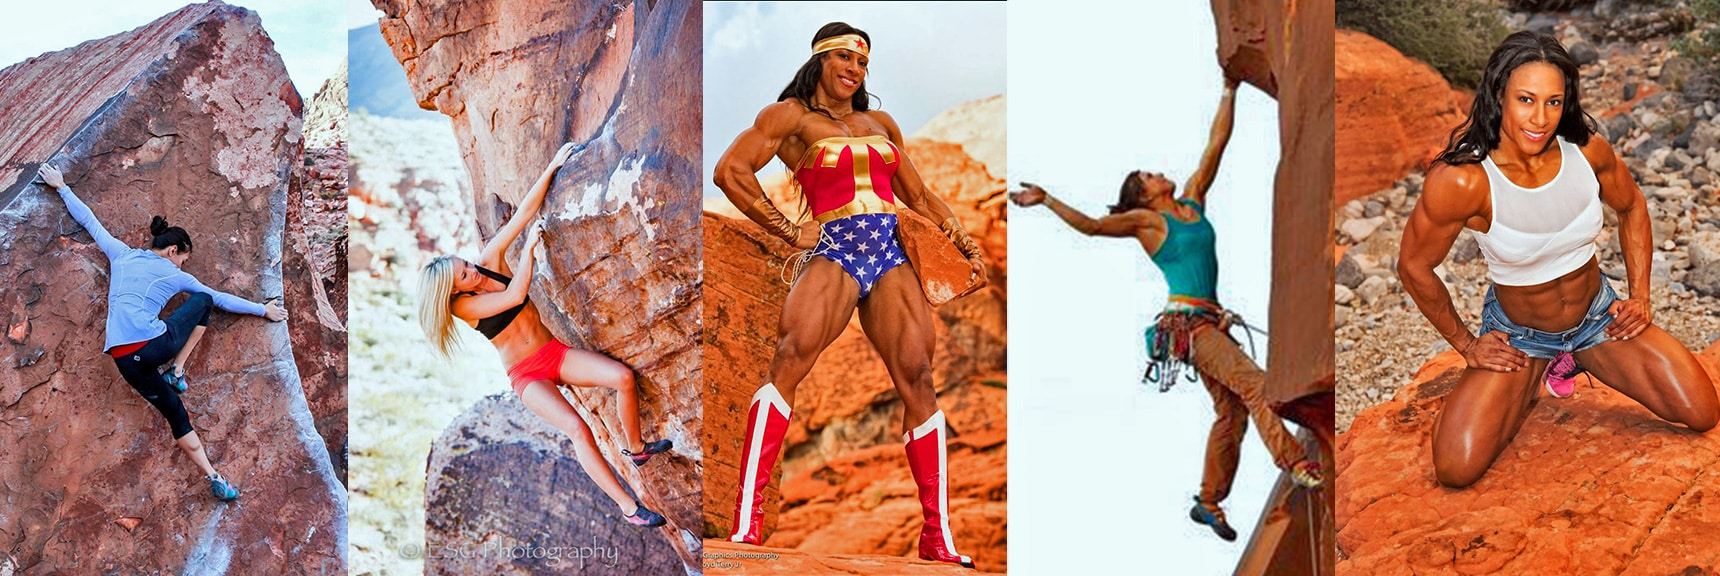 Images from Internet Search on Red Rock Stake Super Hero Camp   Mummy Mountain's Head, Mt Charleston Wilderness, Spring Mountains, Nevada 013